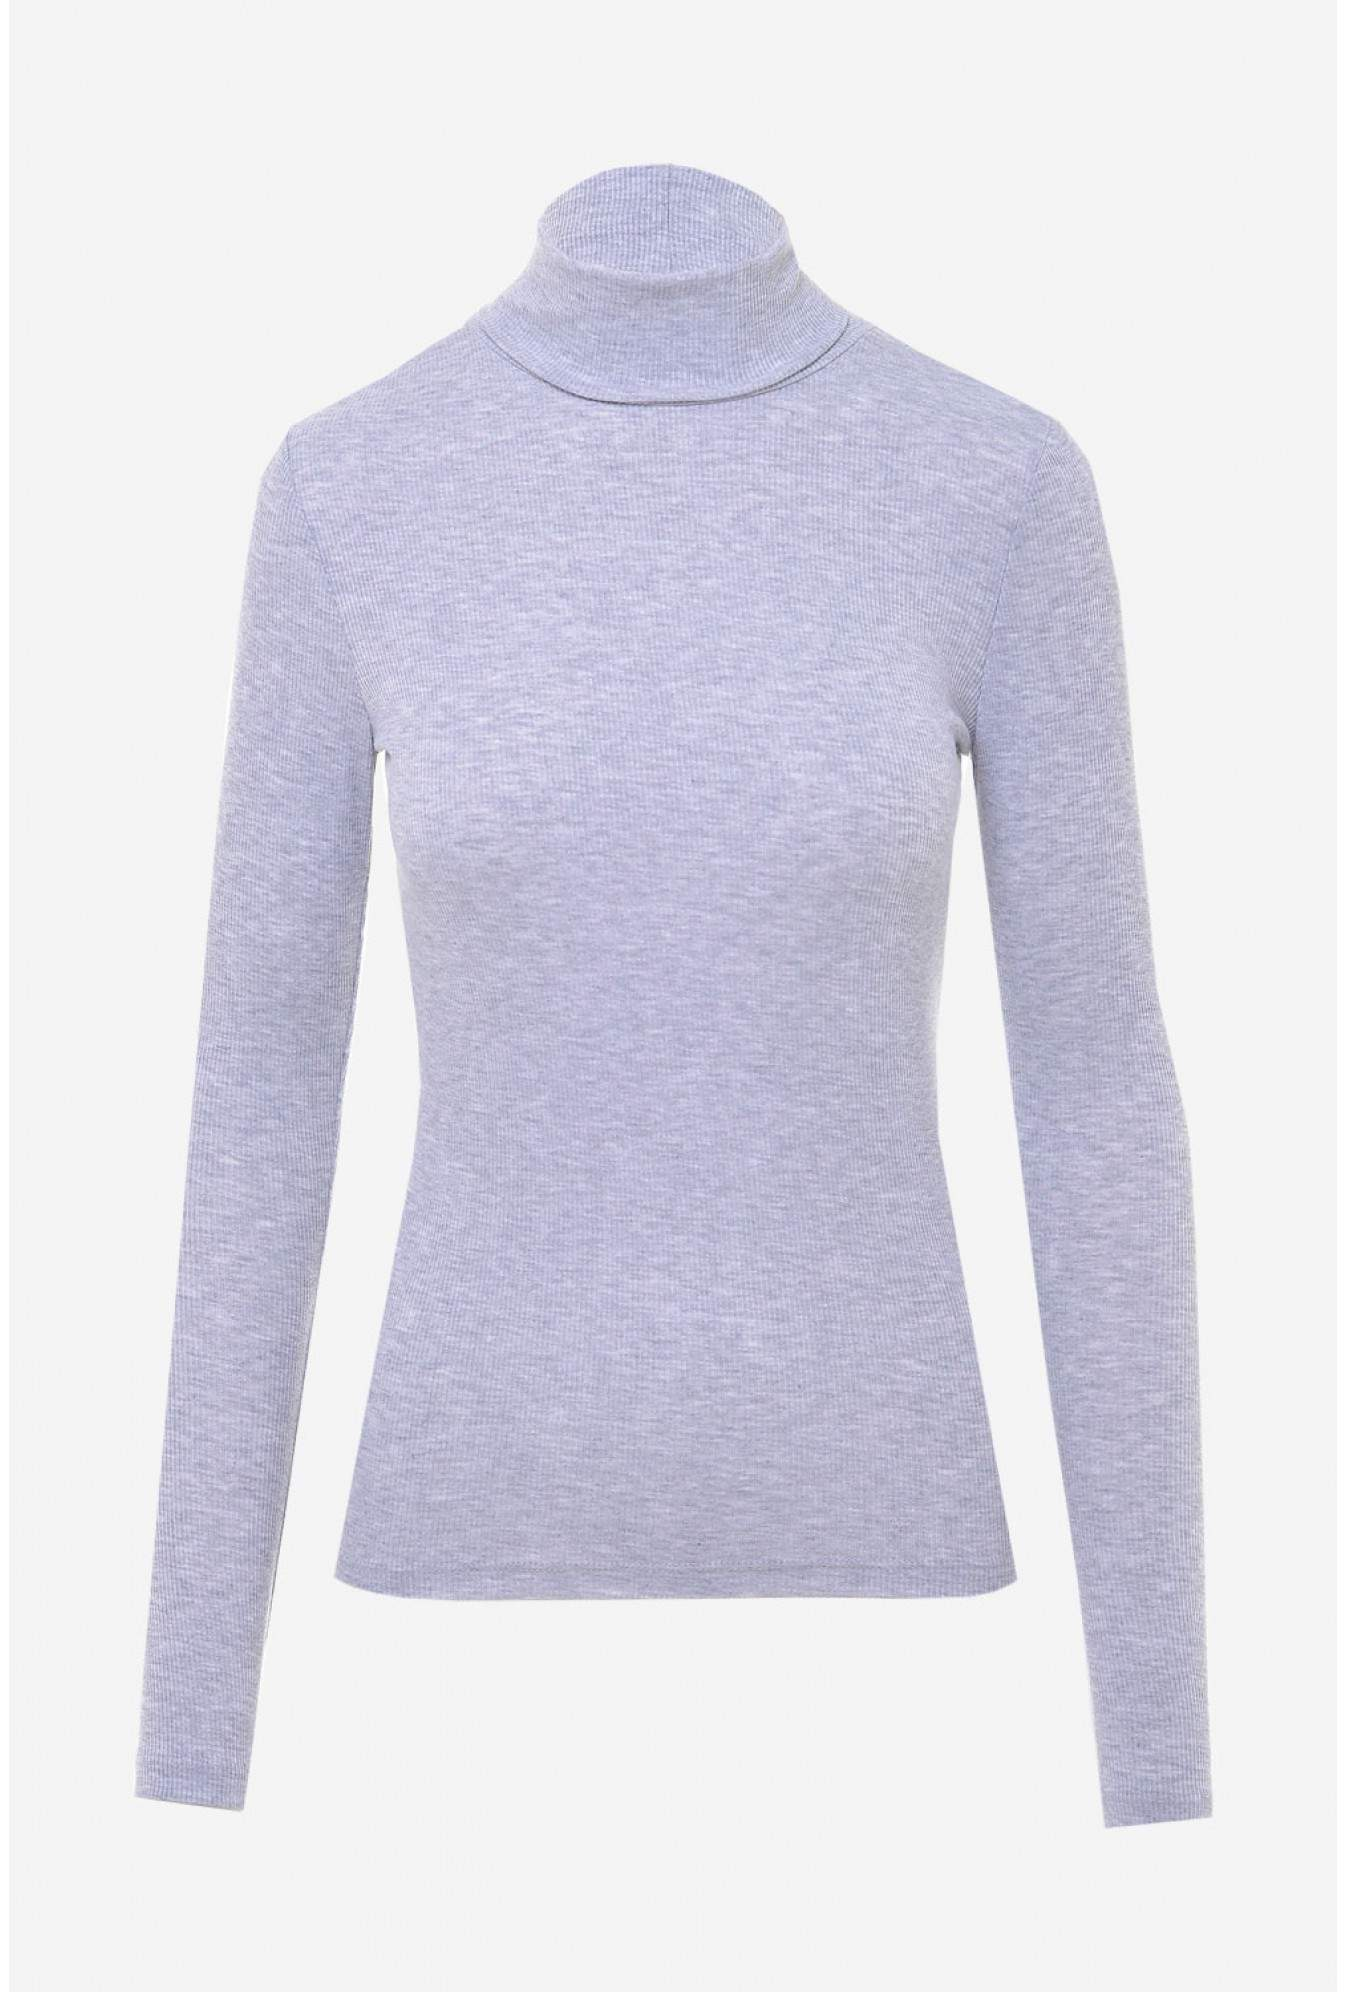 140ea49bbcd047 More Views. Ganie Ribbed Roll Neck Top in Light Grey. Pieces